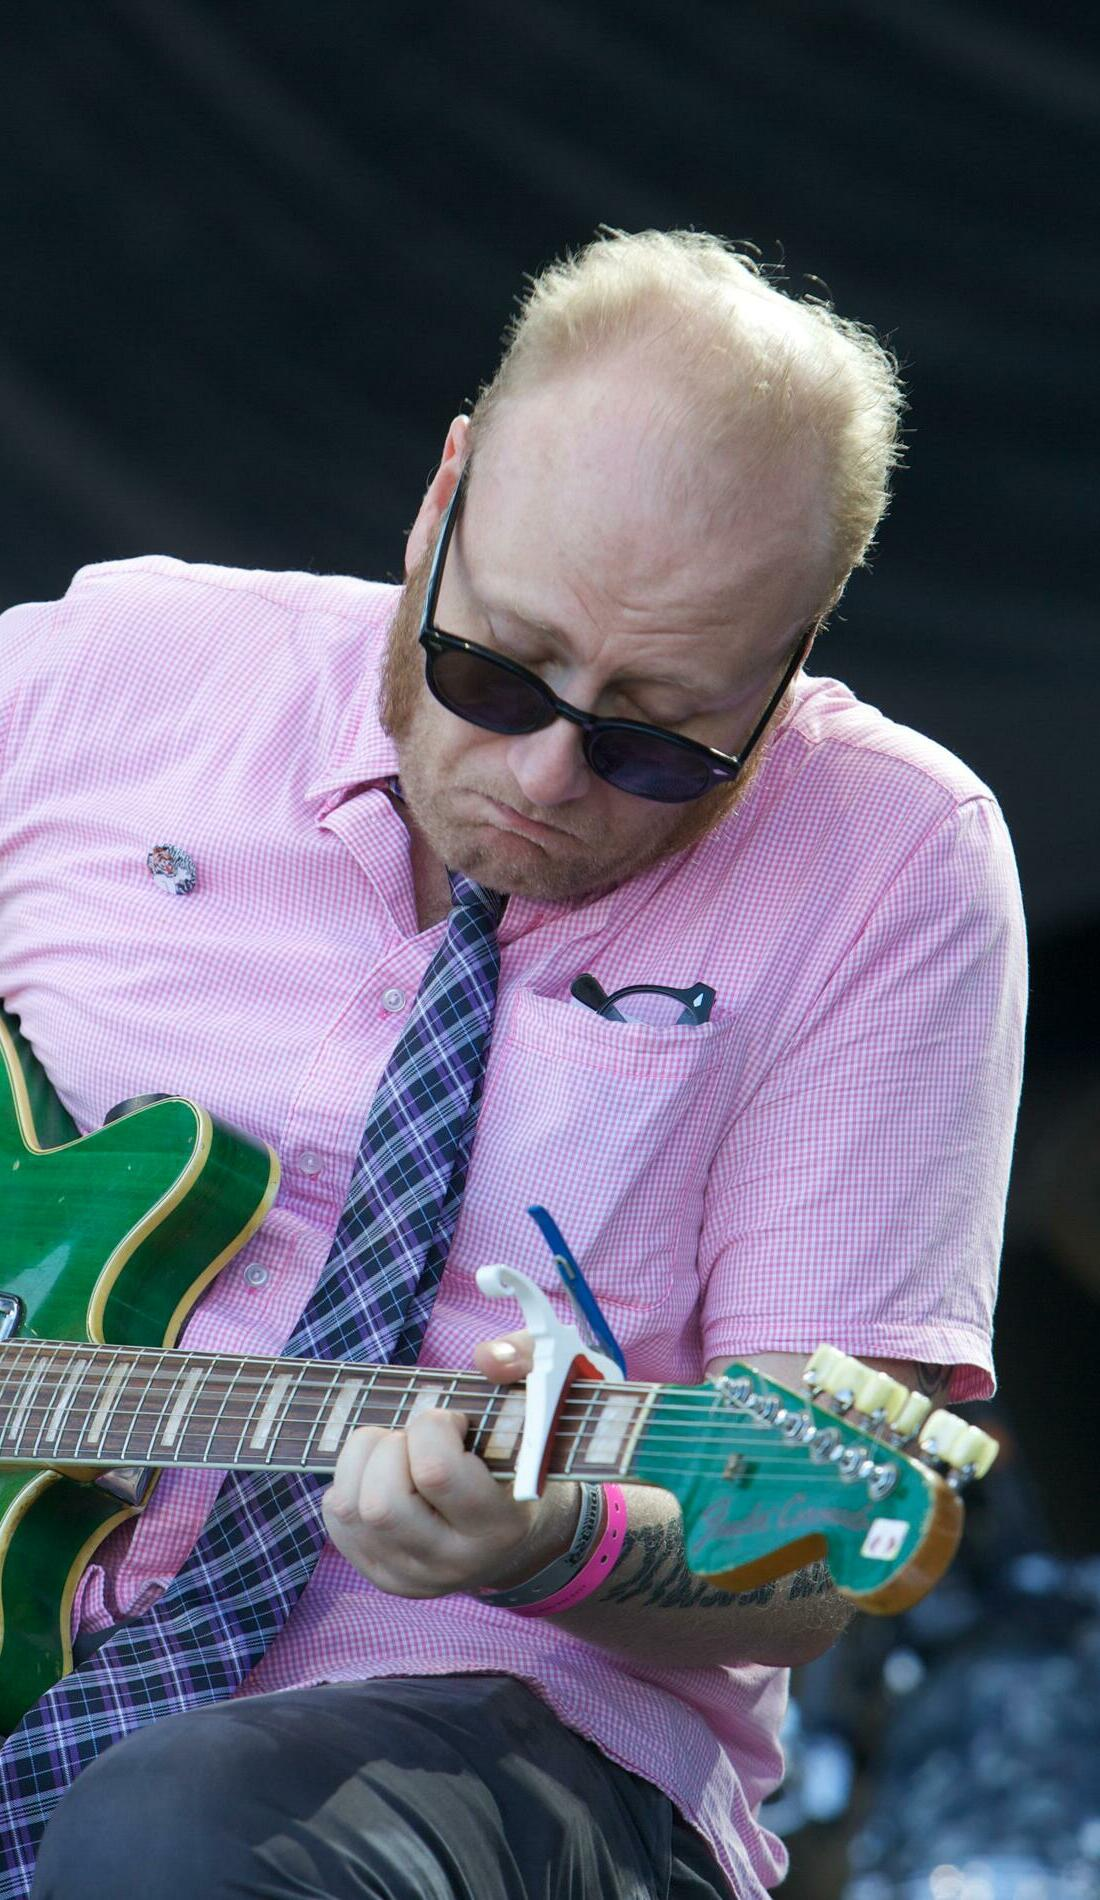 A Mike Doughty live event